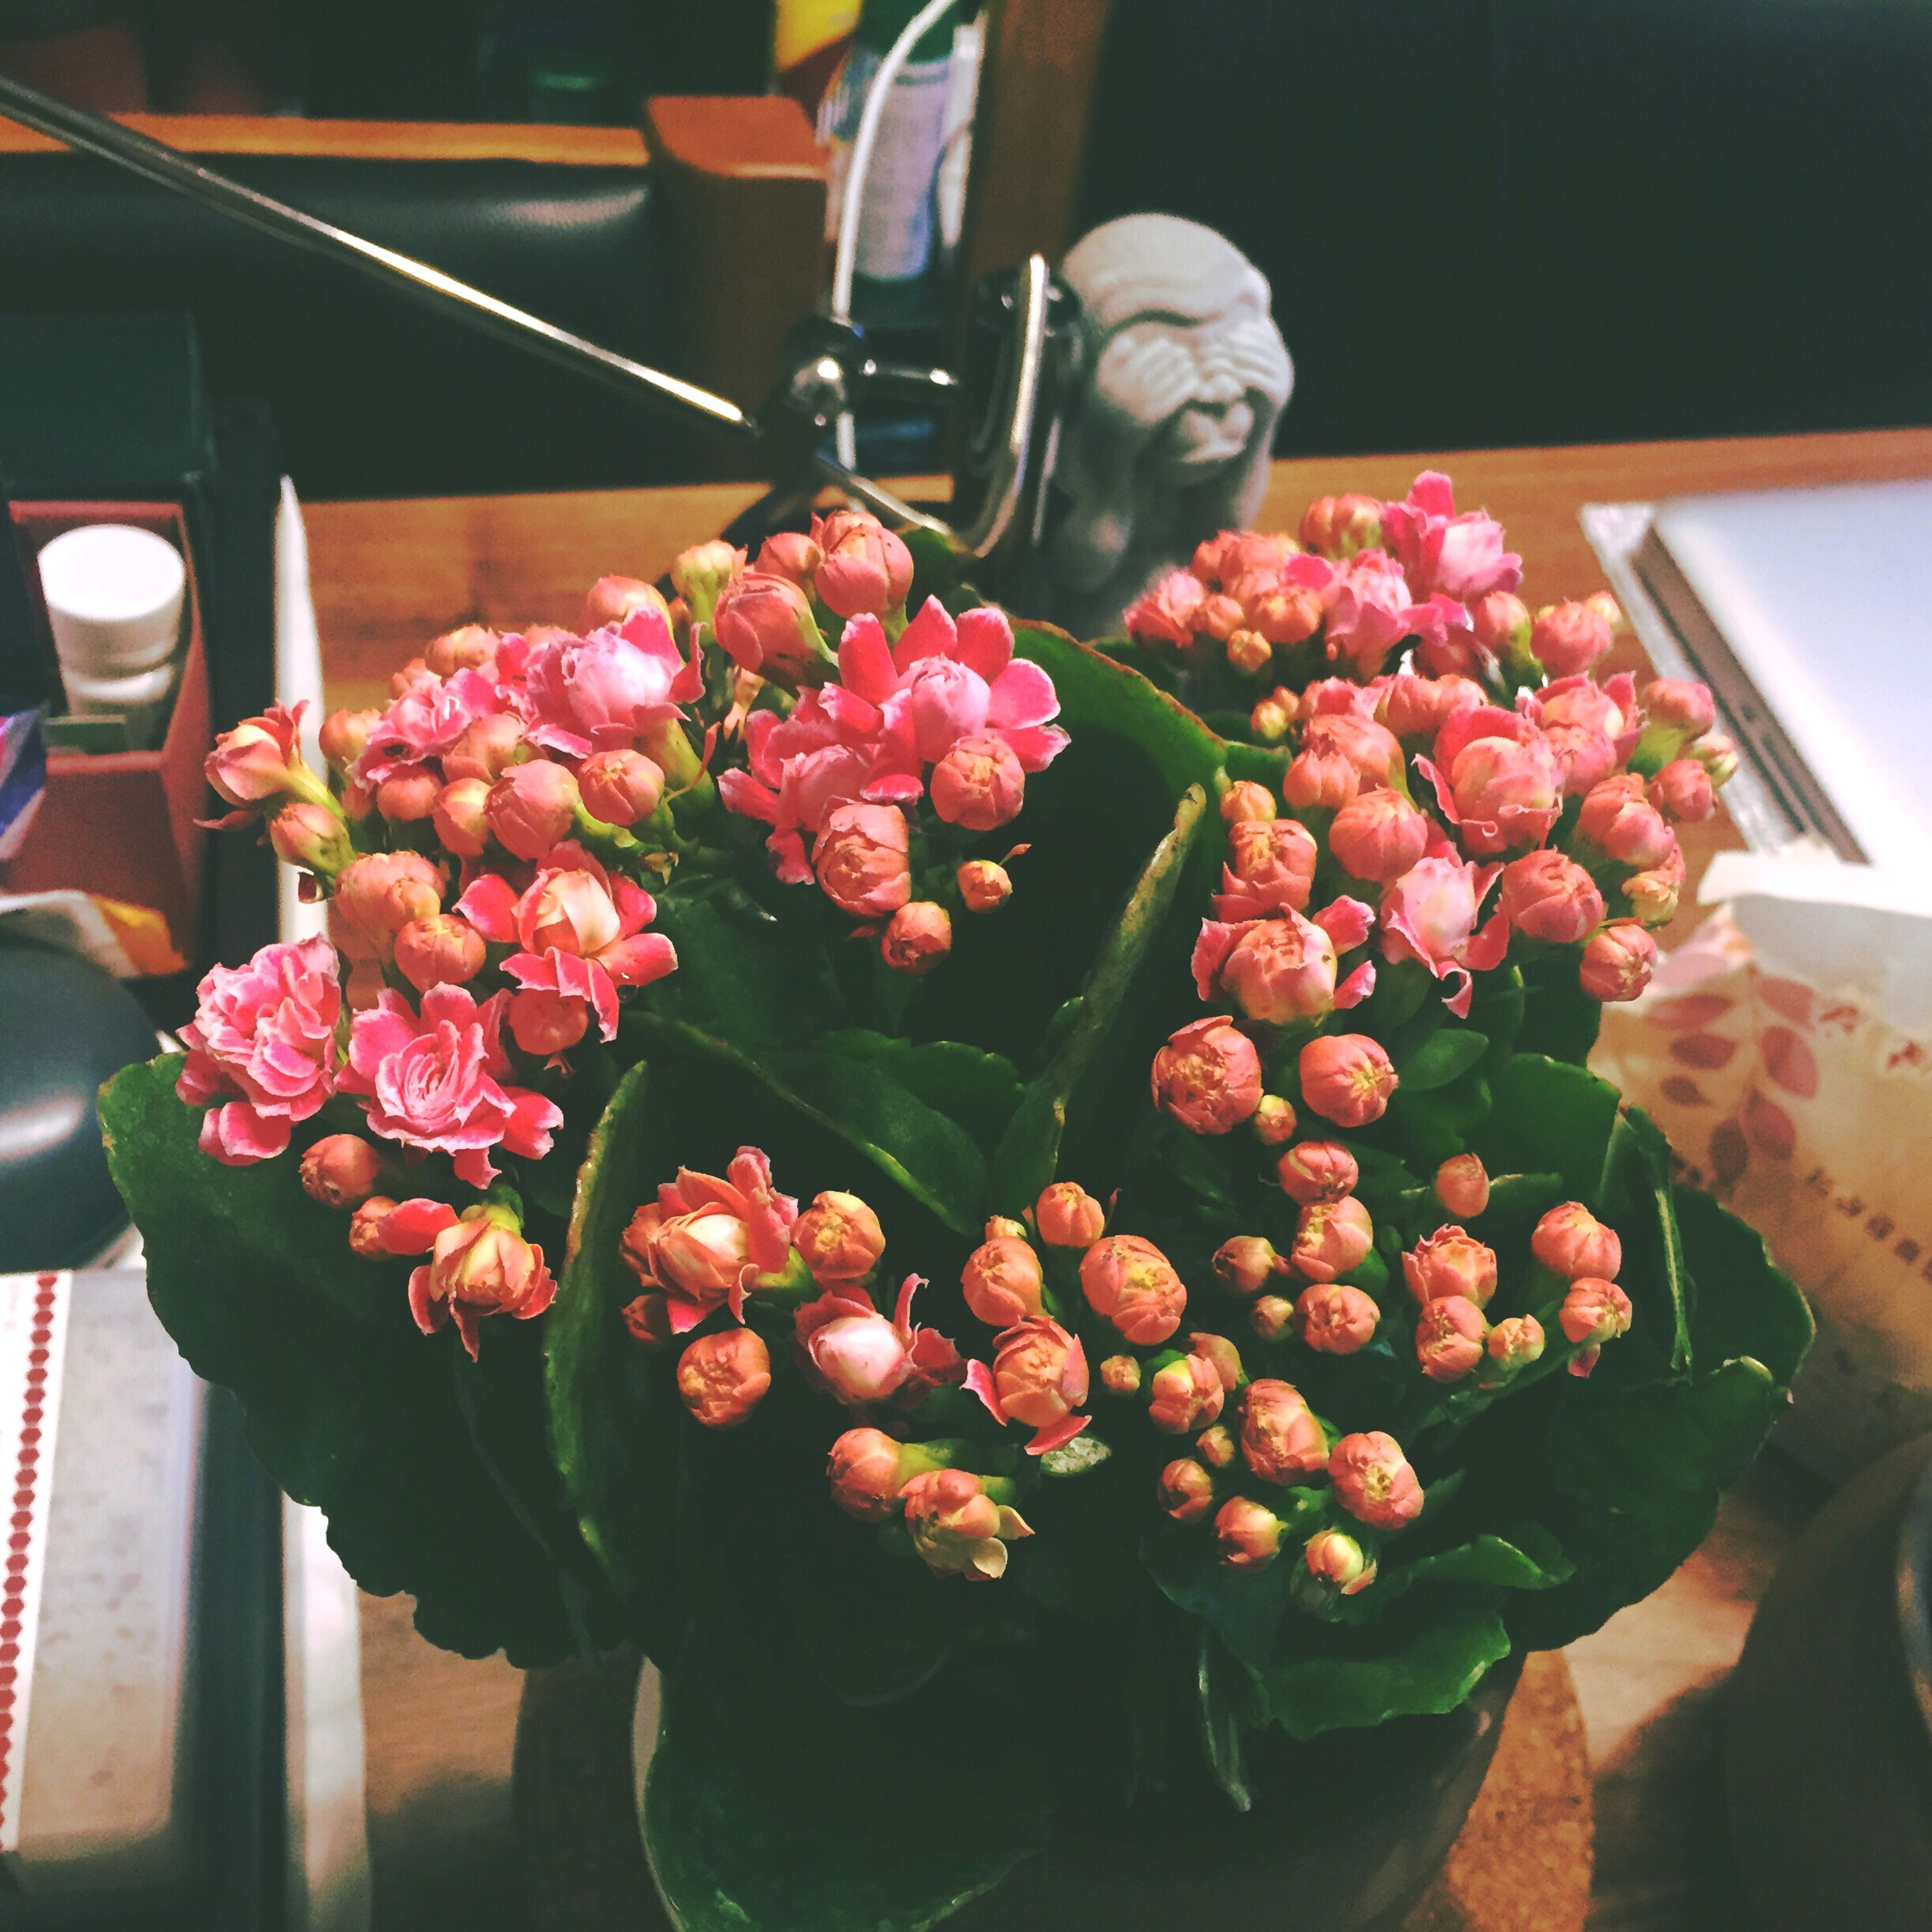 freshness, flower, indoors, close-up, red, fragility, table, vase, food and drink, high angle view, focus on foreground, food, petal, no people, bunch of flowers, growth, plant, pink color, home interior, still life